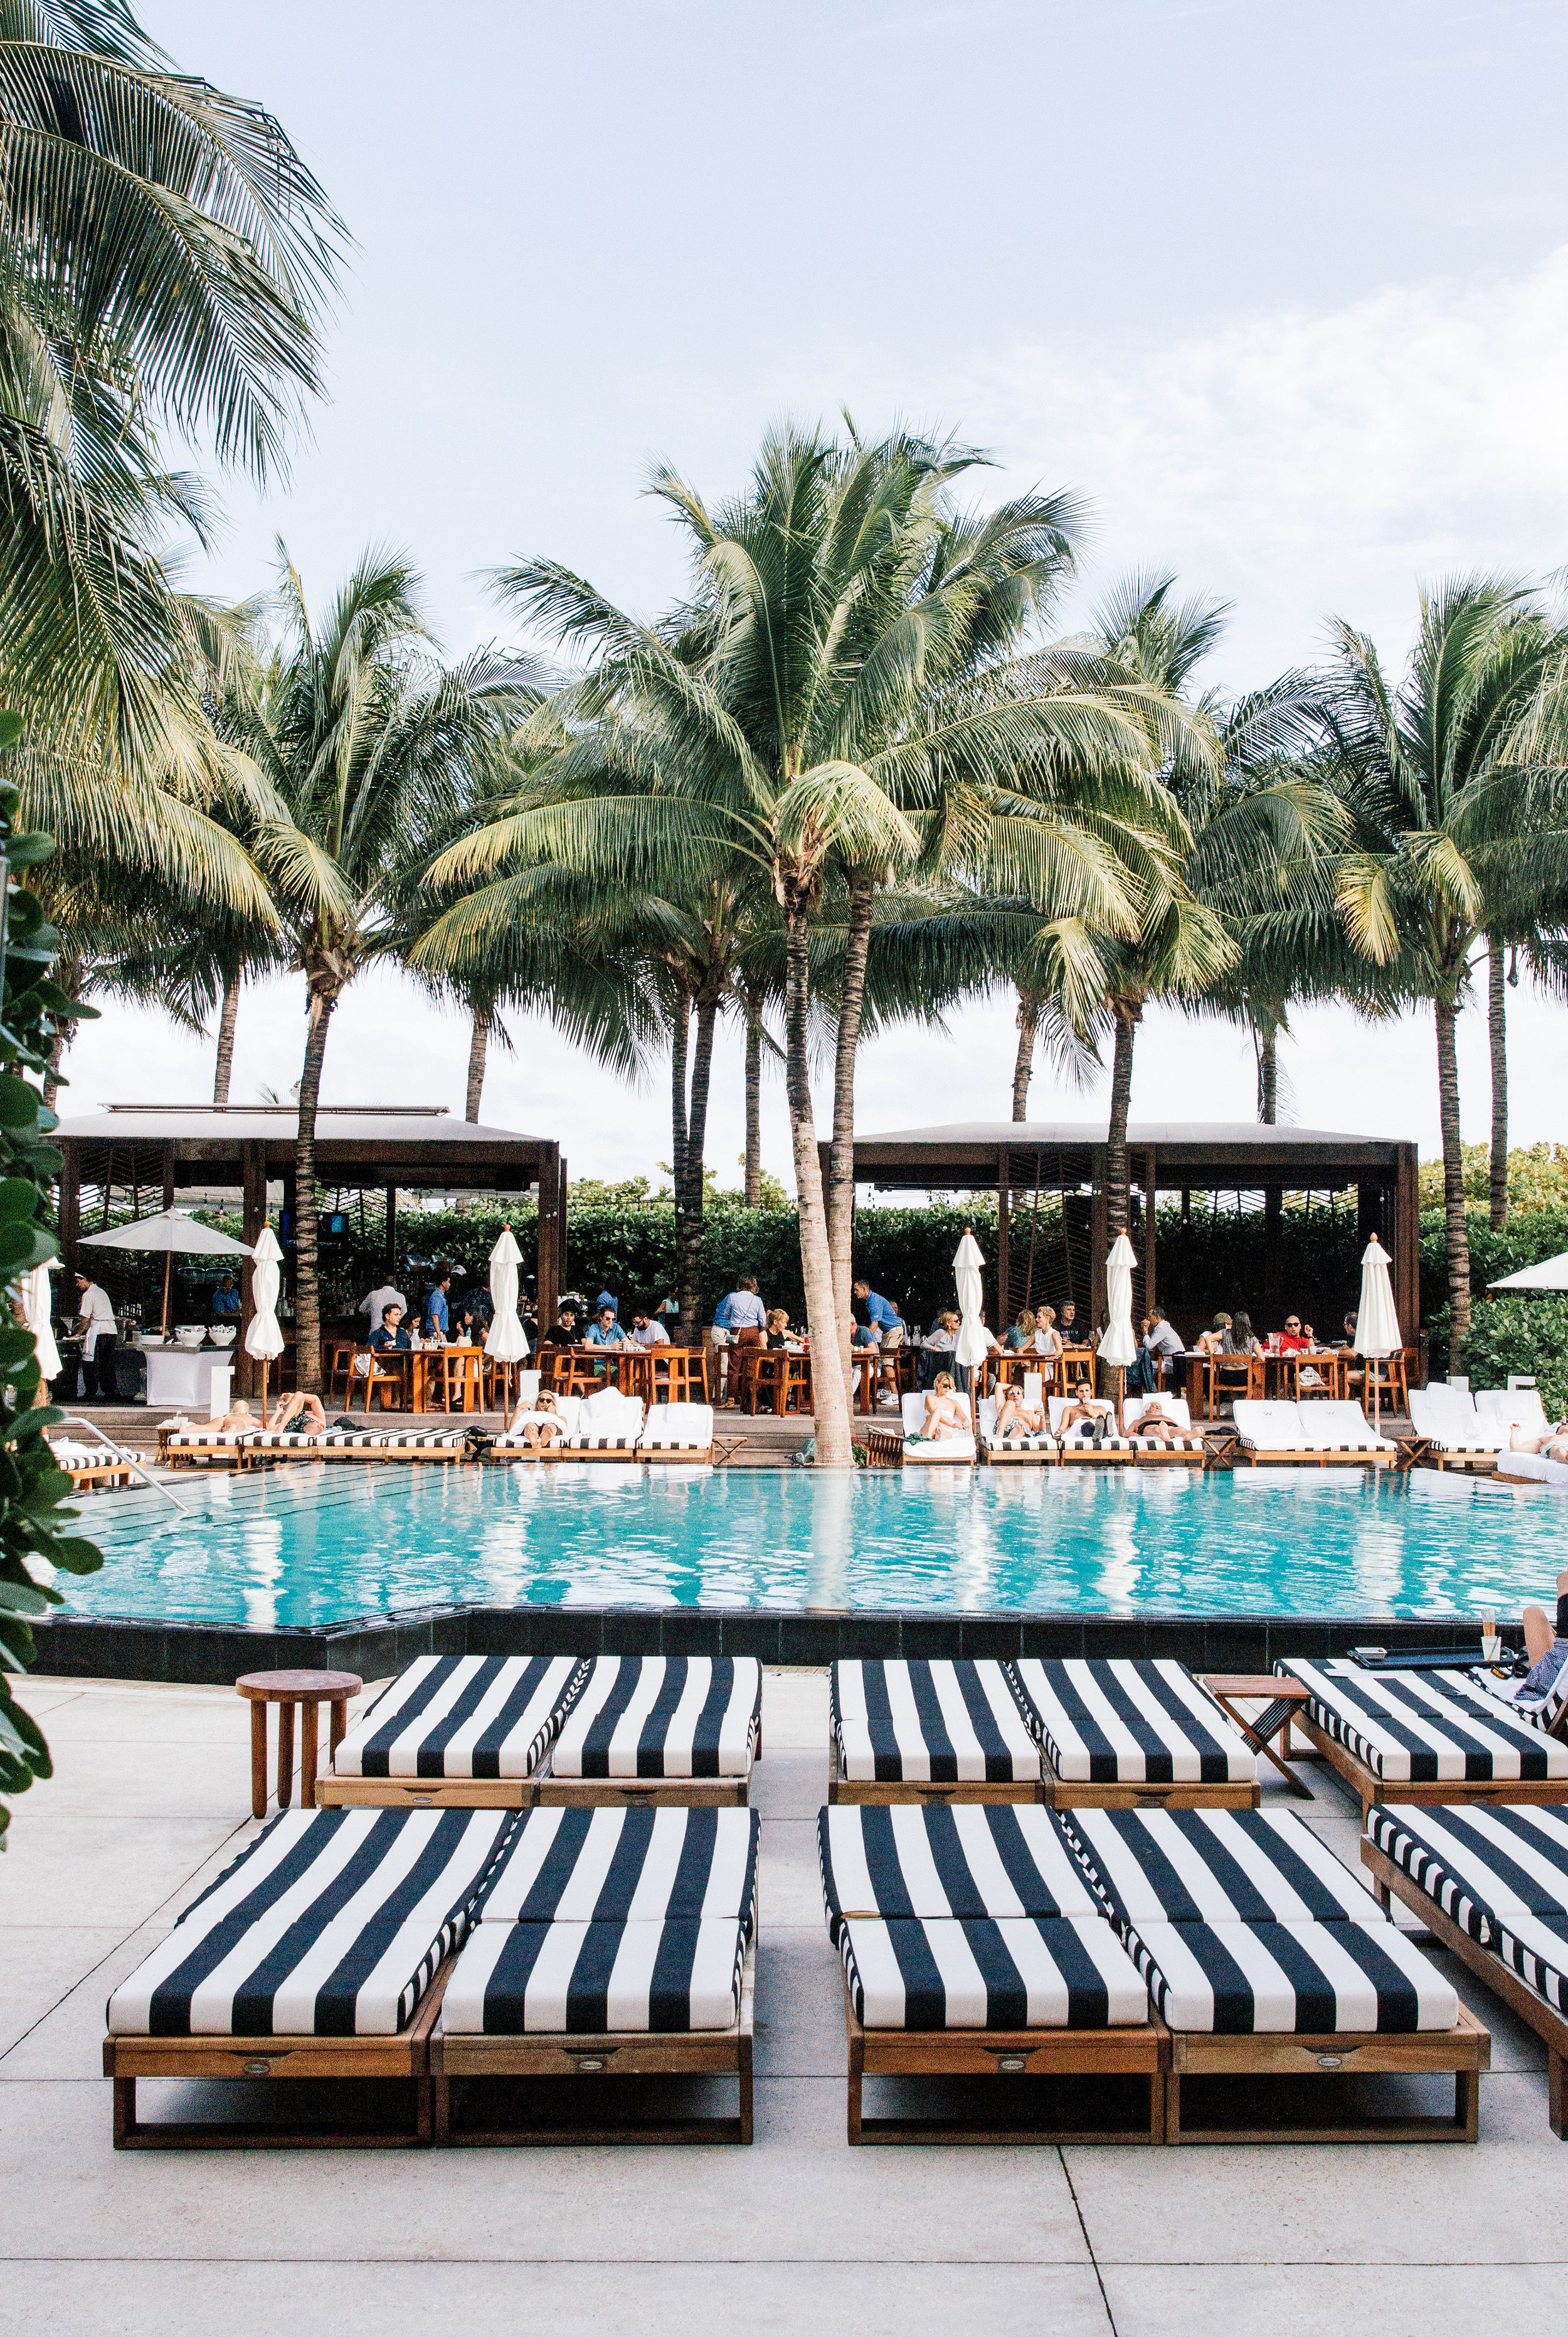 A Taste Of Miami With Images South Beach Hotels Miami Hotels